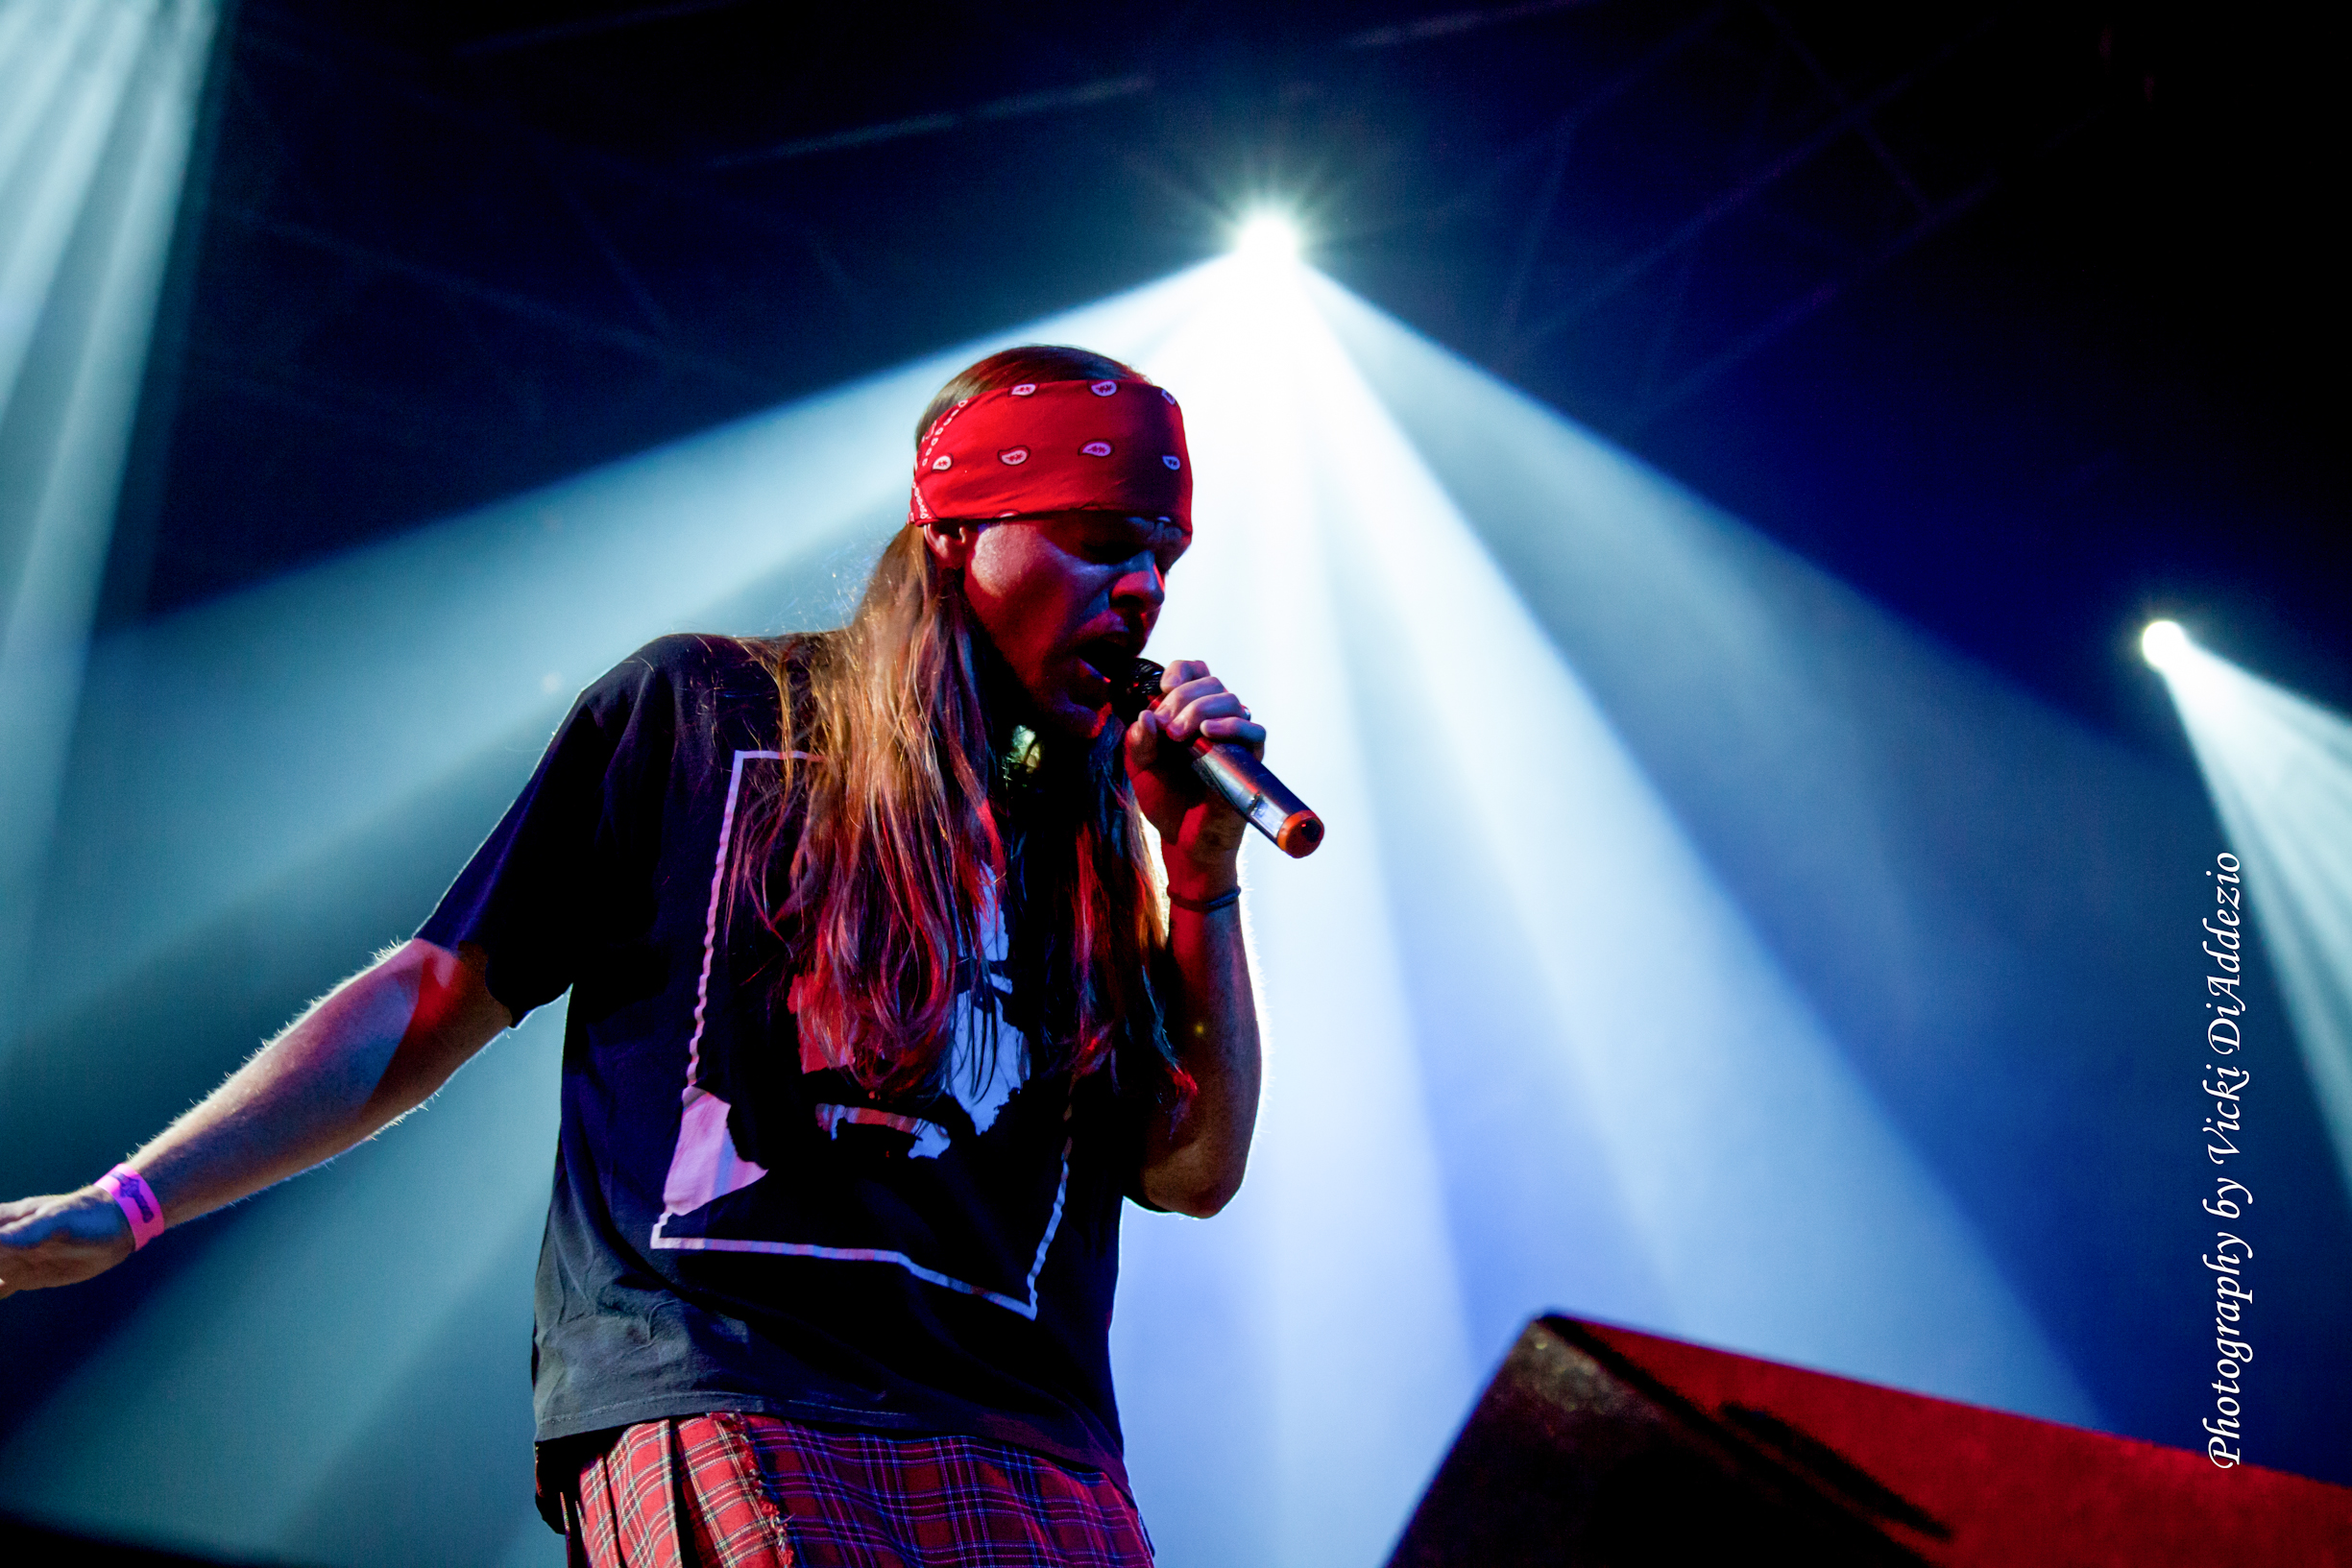 Appetite For Destruction - The Ultimate Guns N' Roses Experience